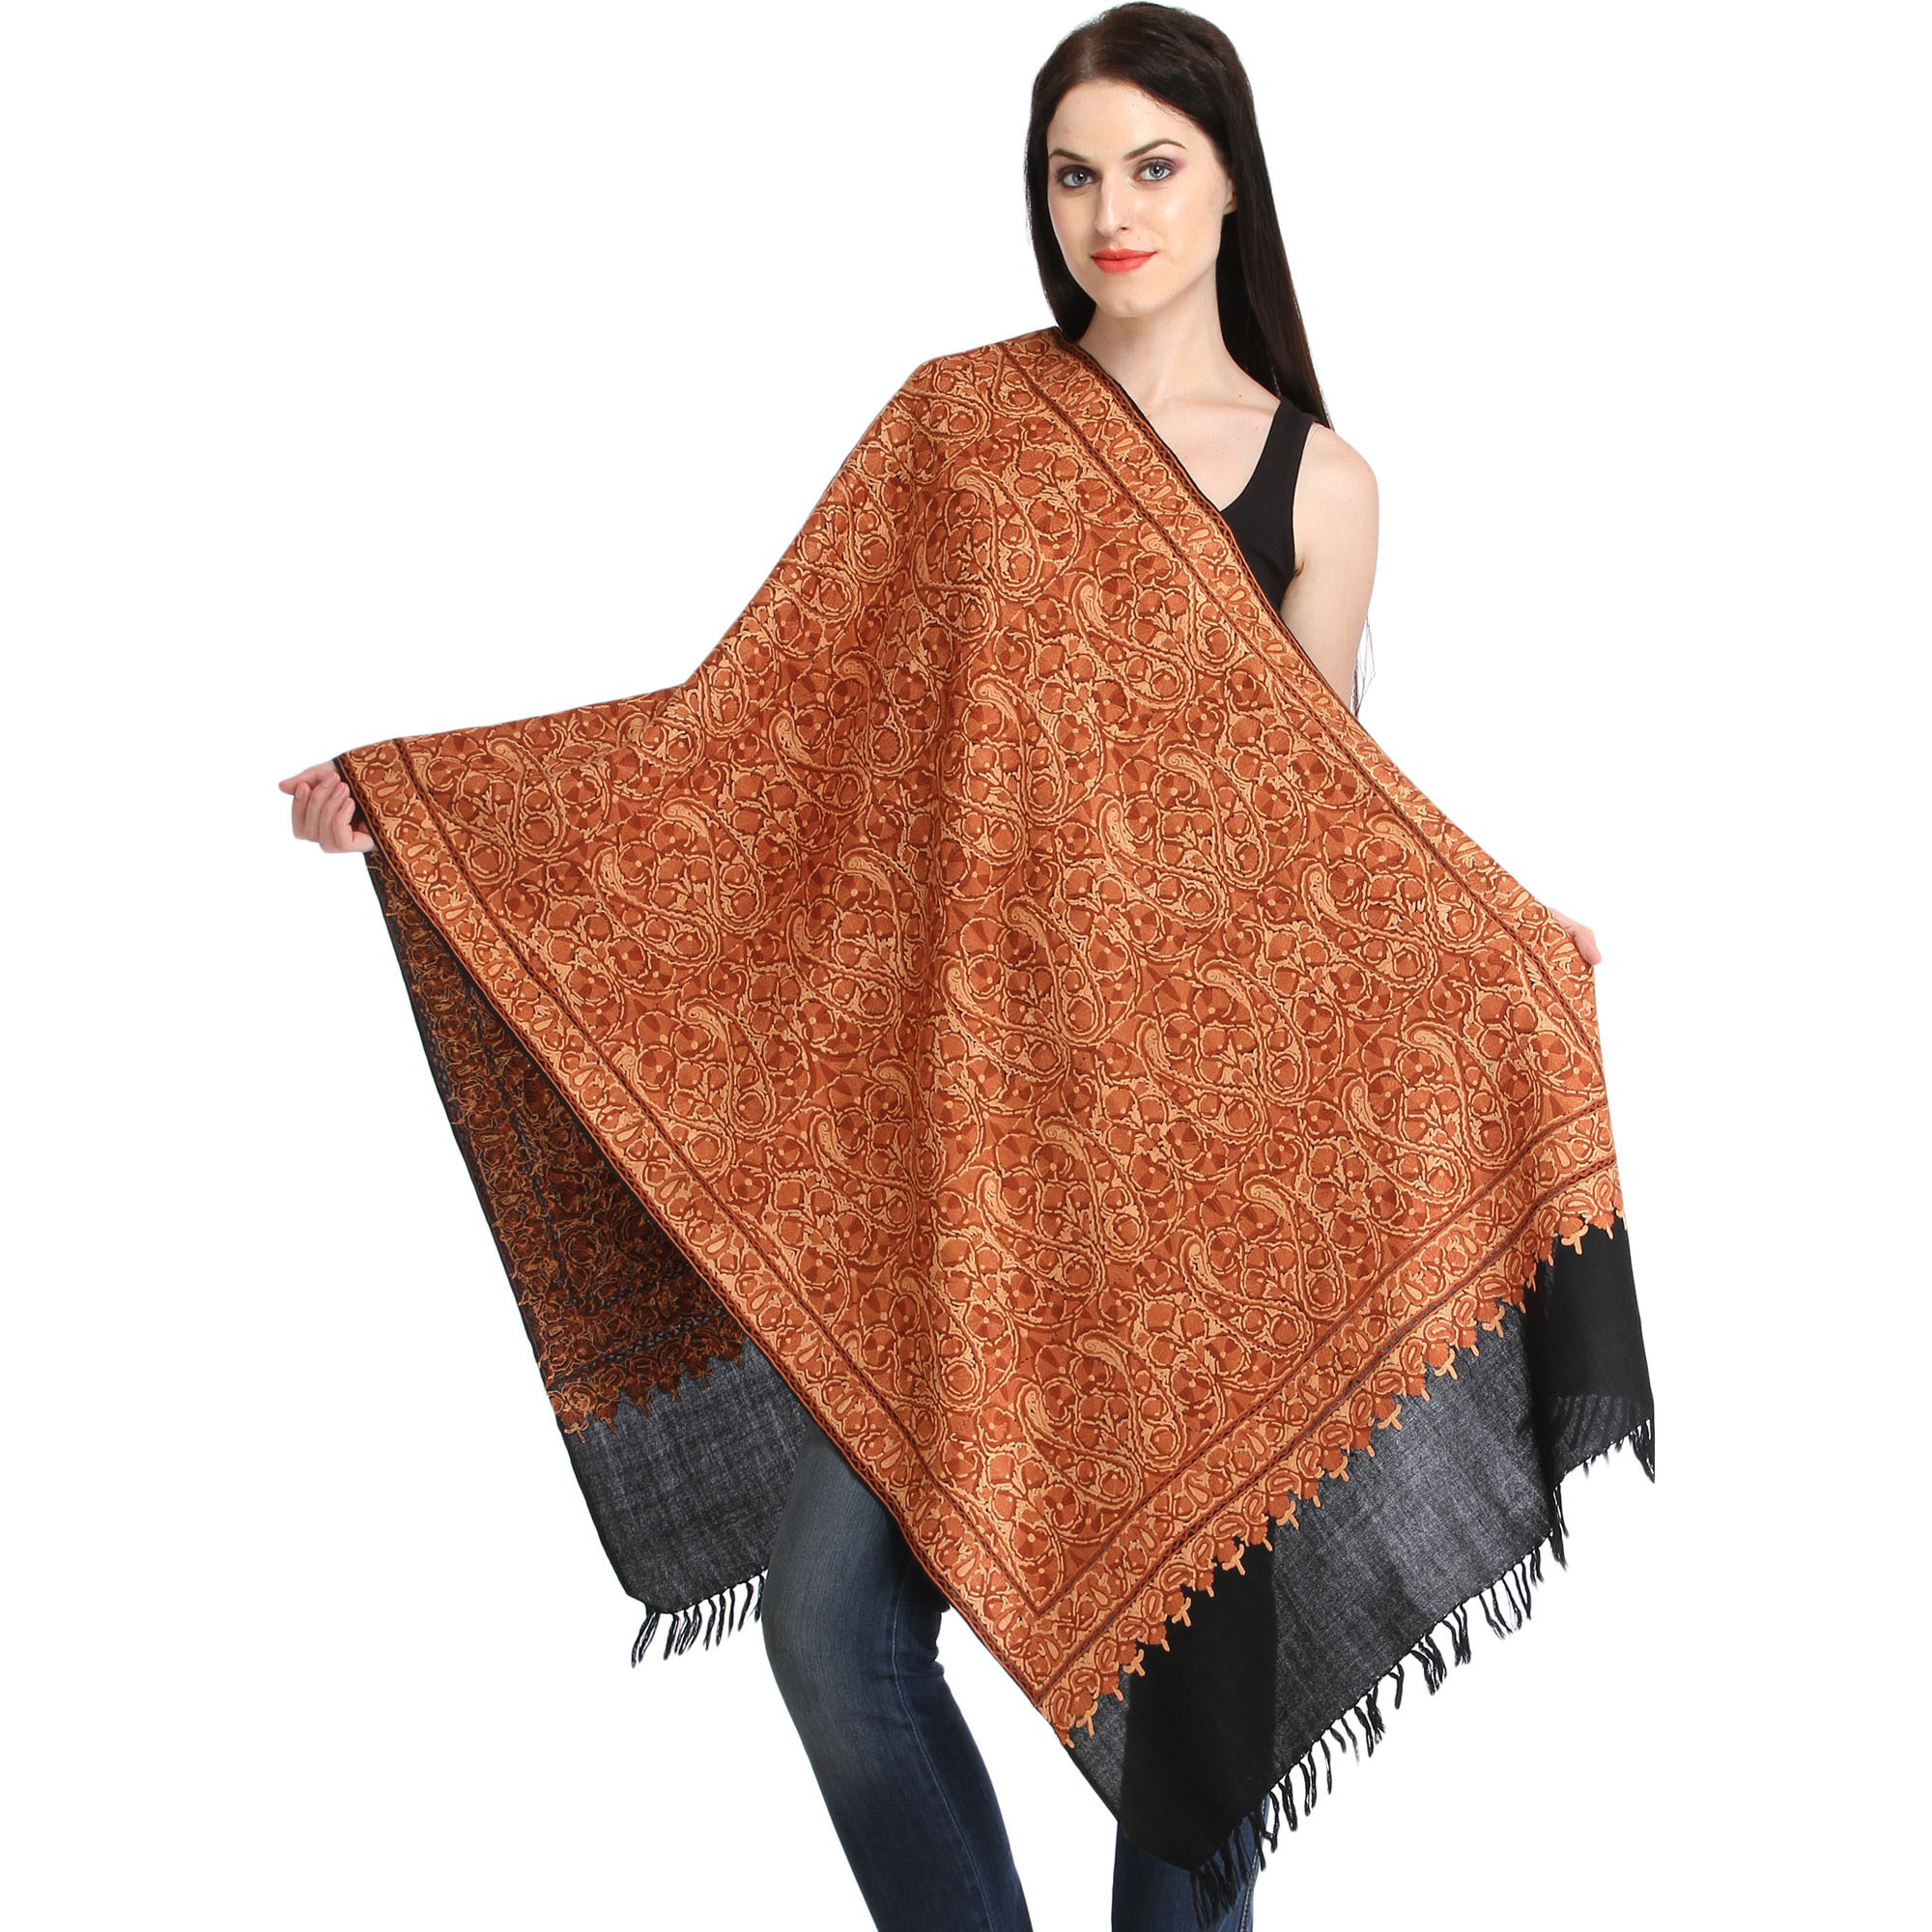 Brown and Black Kashmiri Stole with Ari Hand-Embroidered Paisleys All-Over